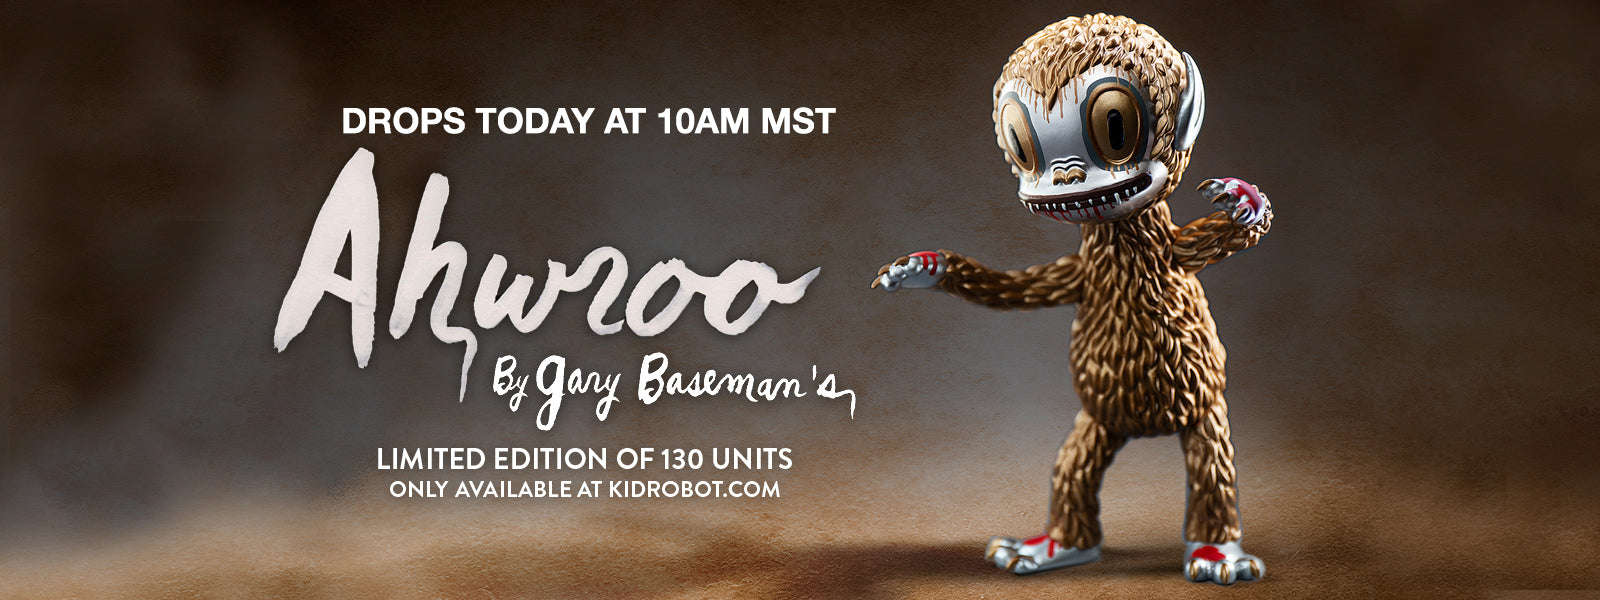 Ahwroo Art Figure by Gary Baseman - Metallic Kidrobot Exclusive